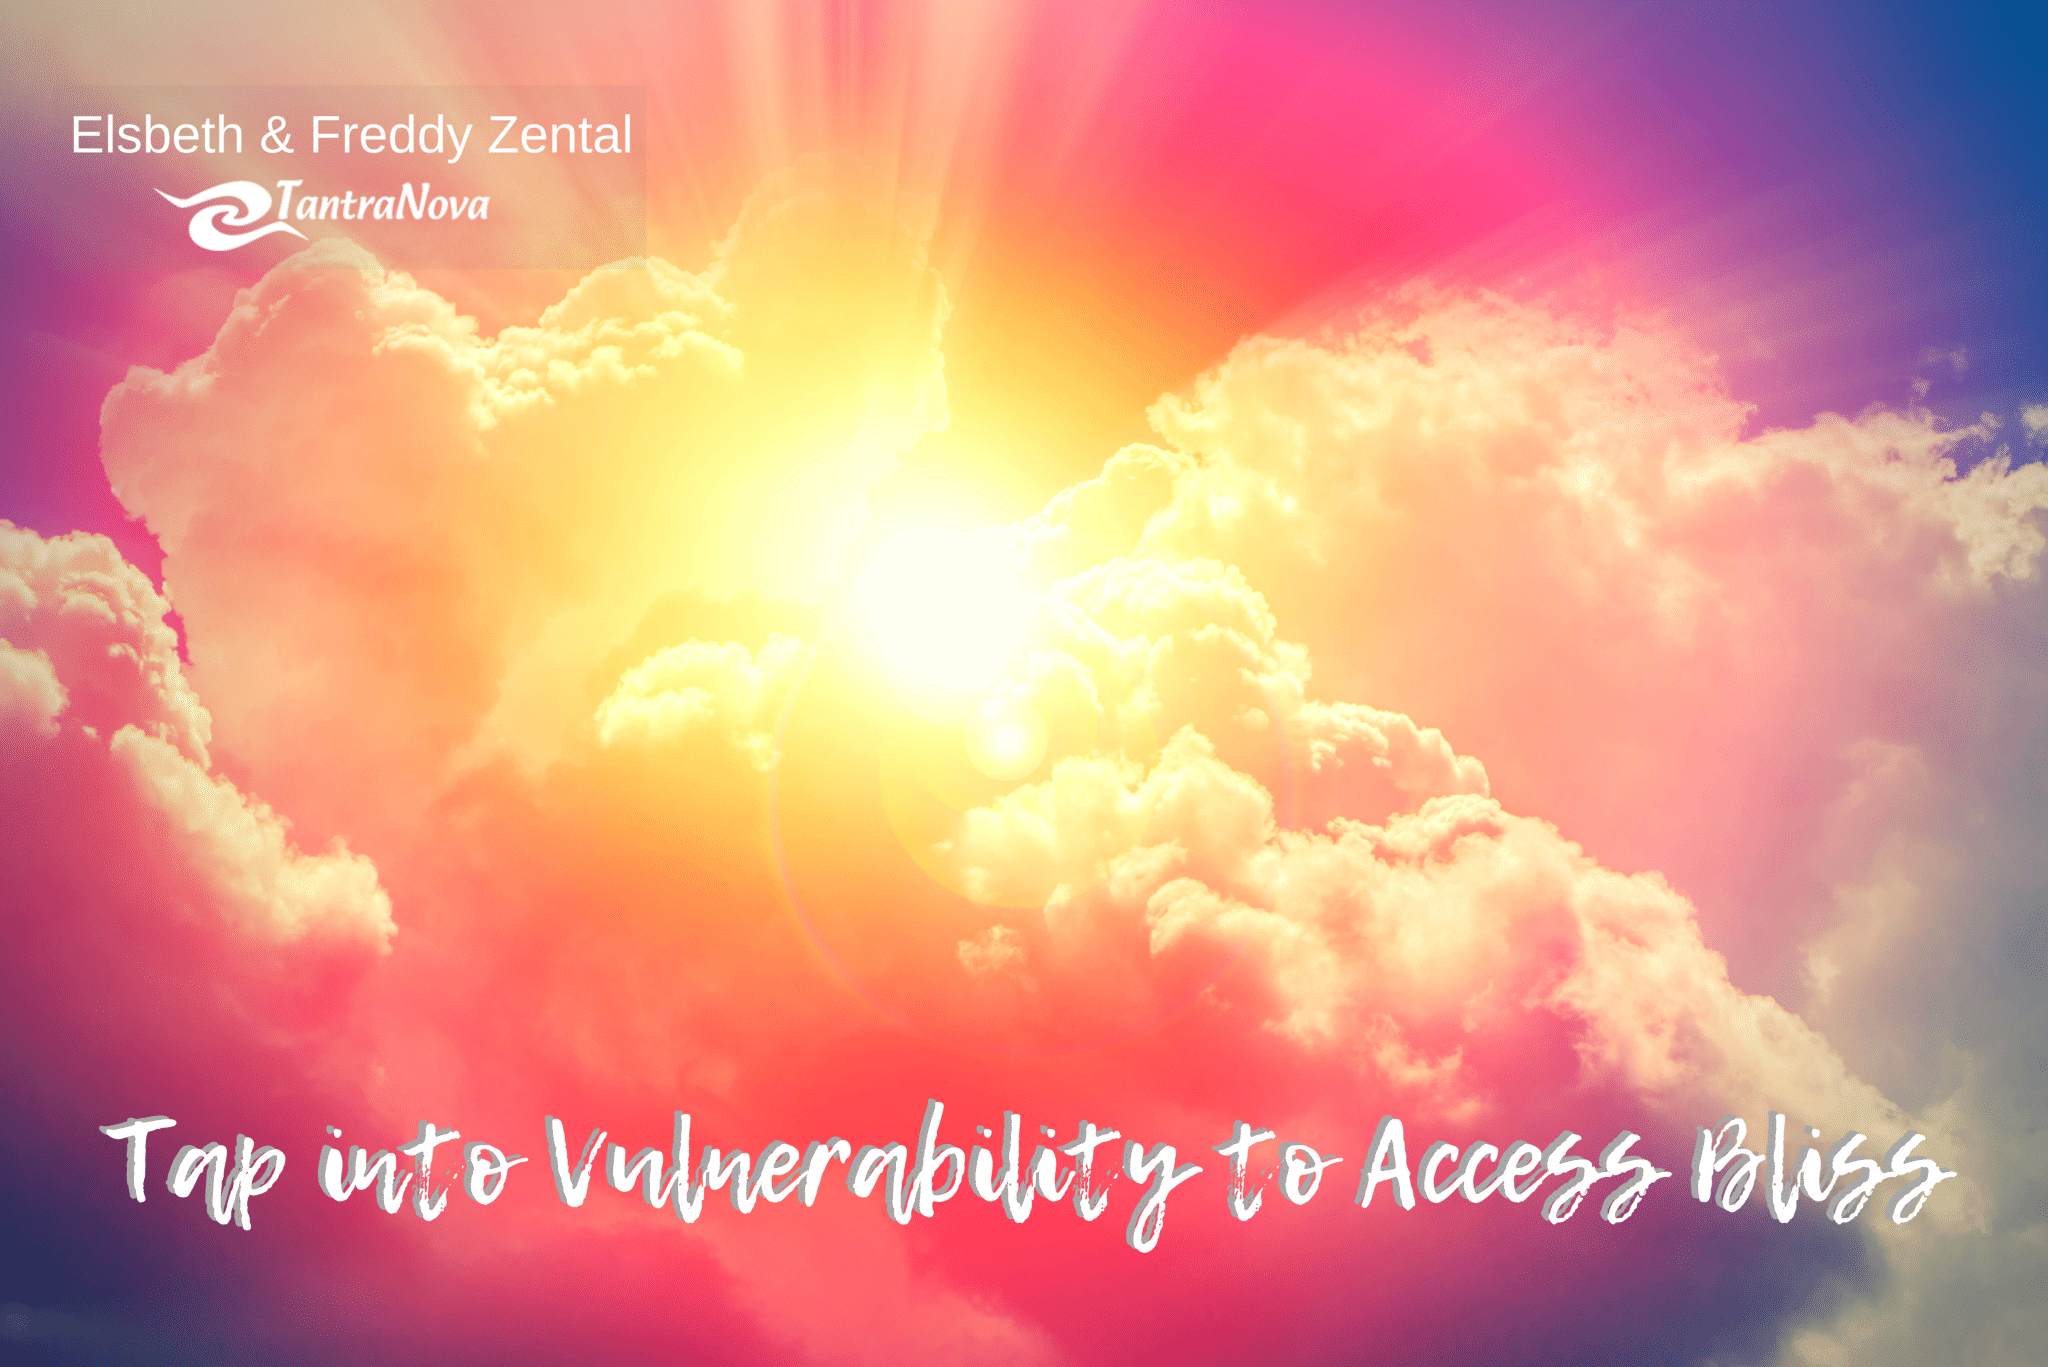 Tap into Vulnerability to Access Bliss